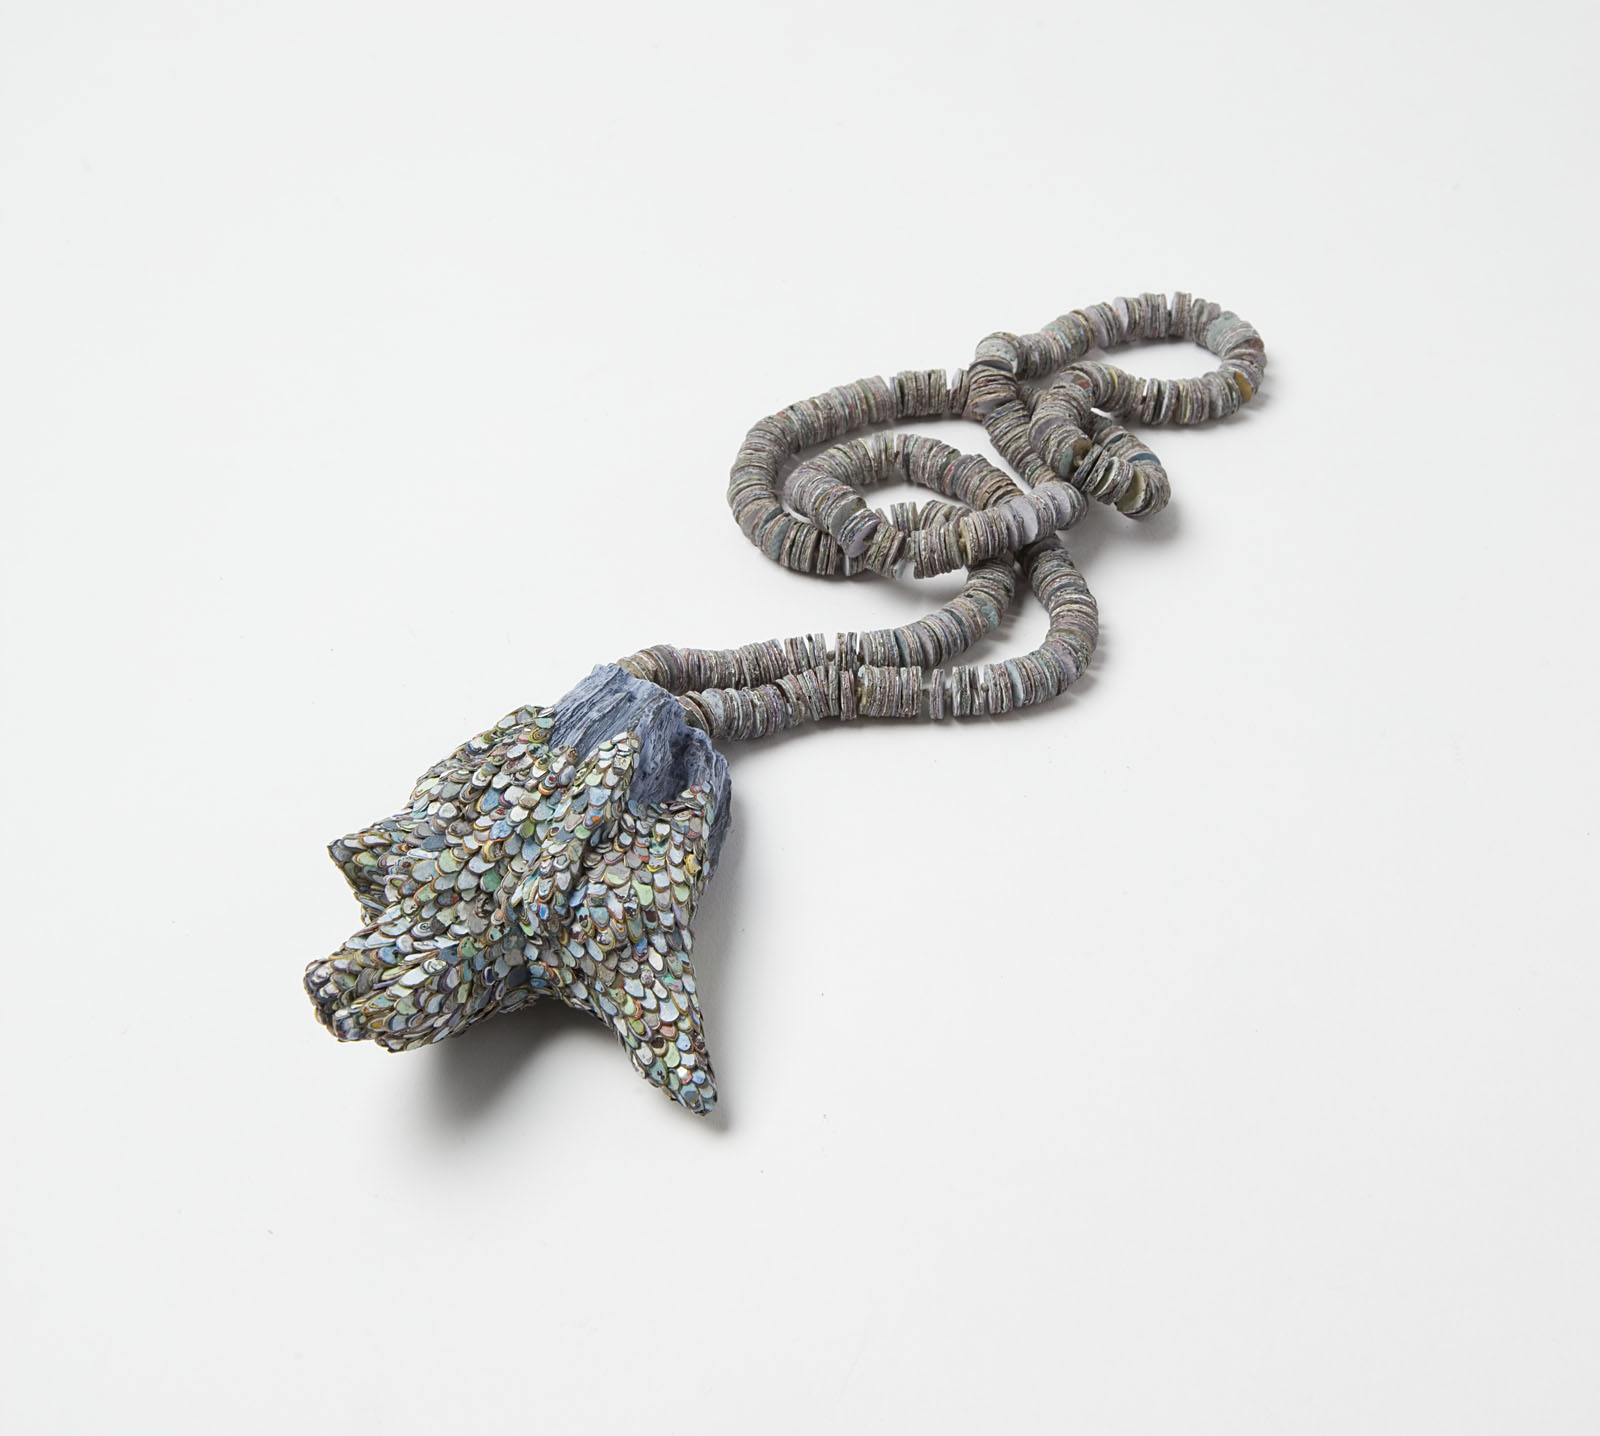 """Rabbit's Foot"" I Necklace, 2014 I Wood, graffiti, silver, string, paint I Photo: Mirei Takeuchi"